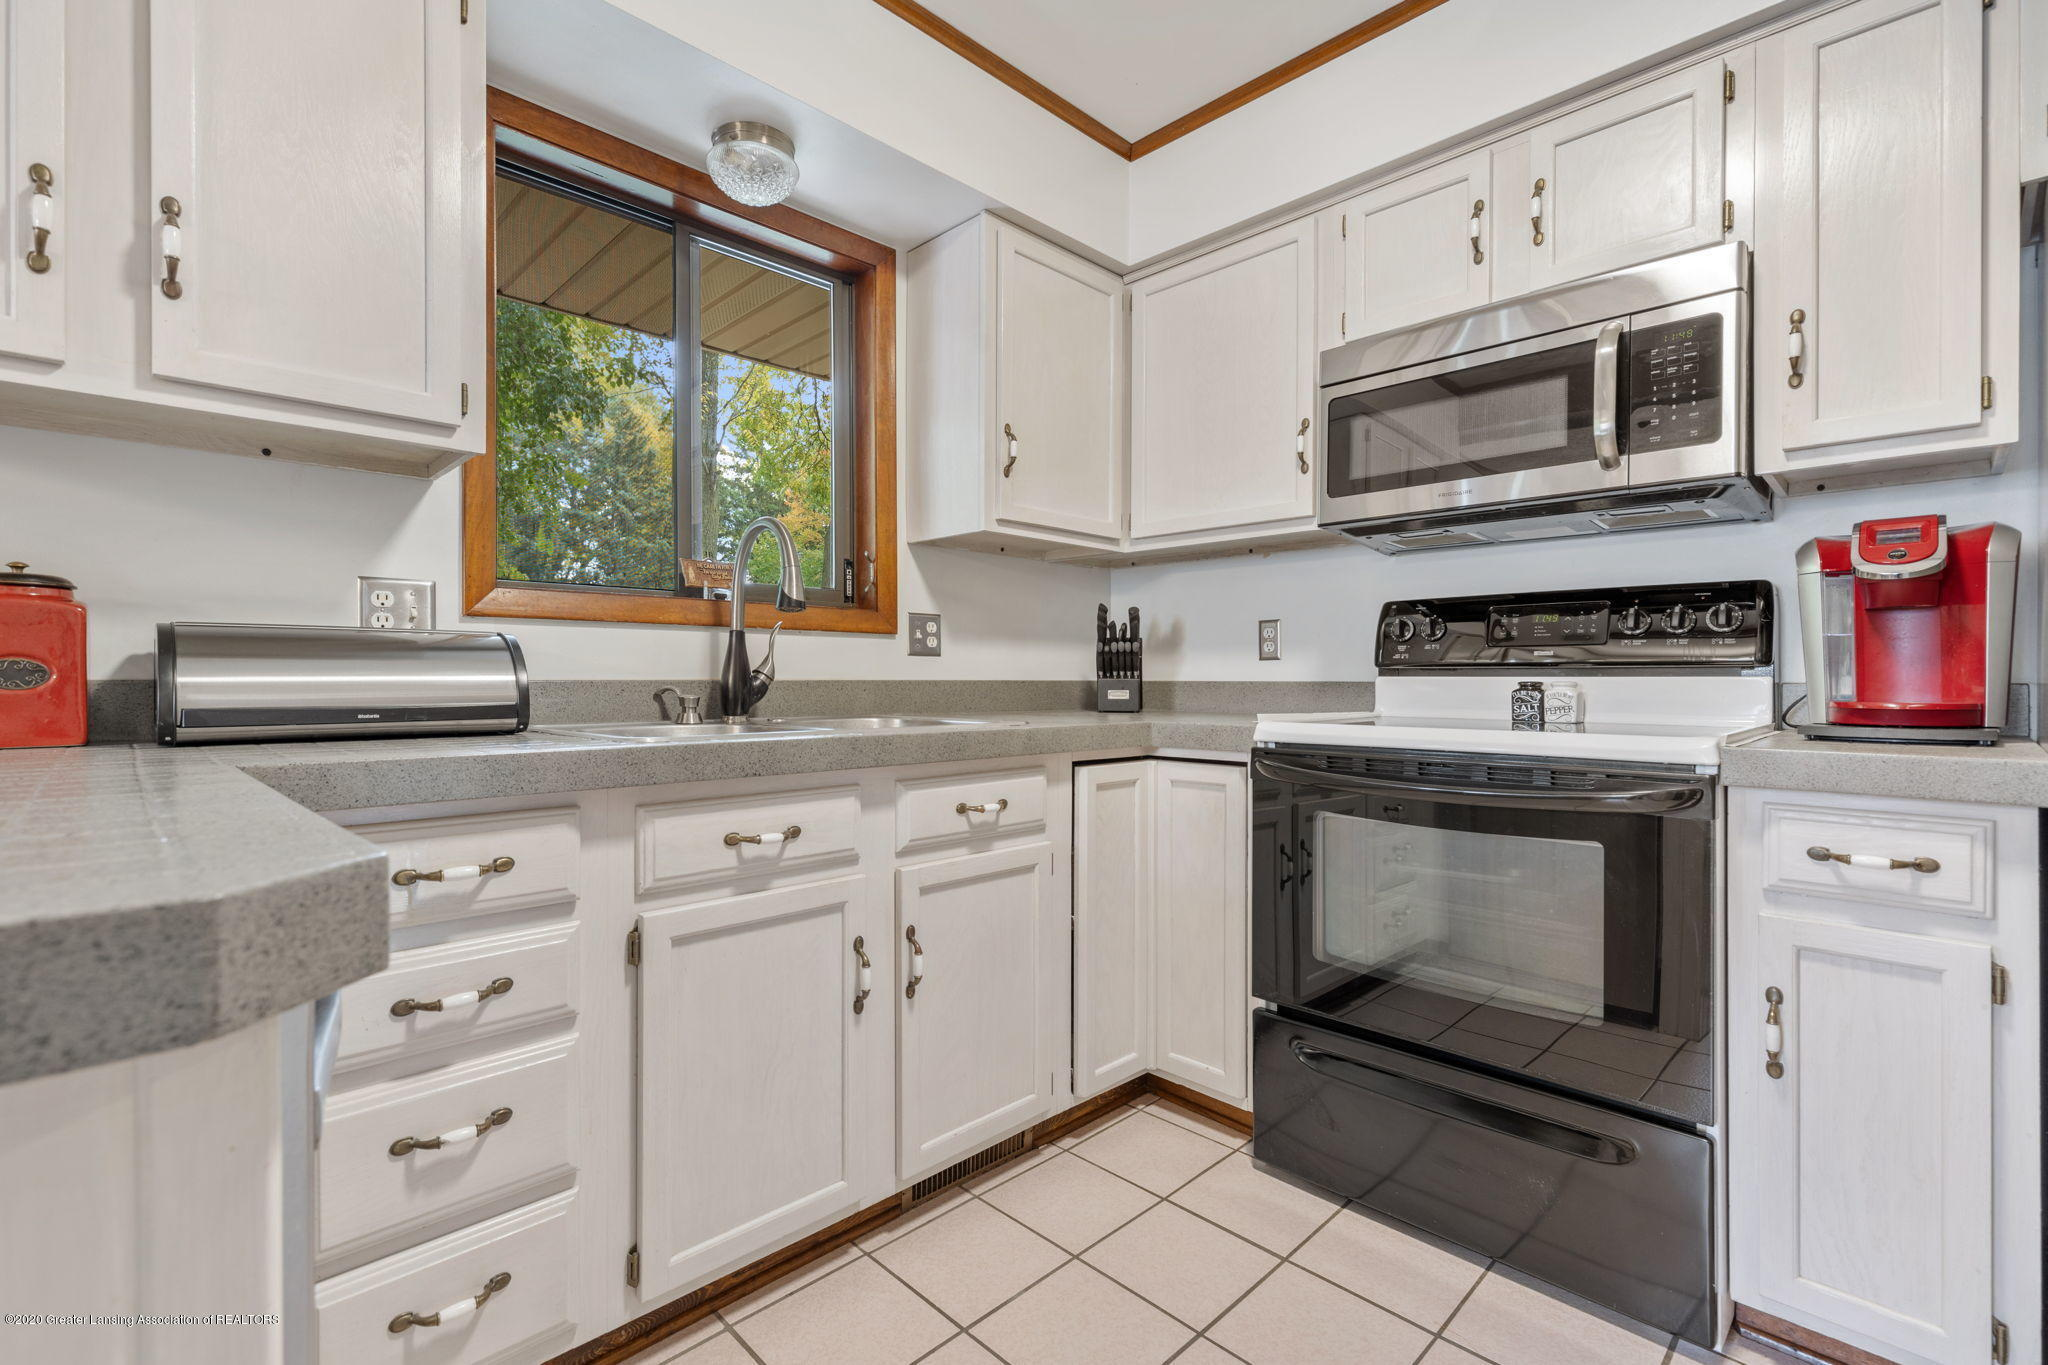 617 Green St - 27-web-or-mls-1P6A9496 - 11